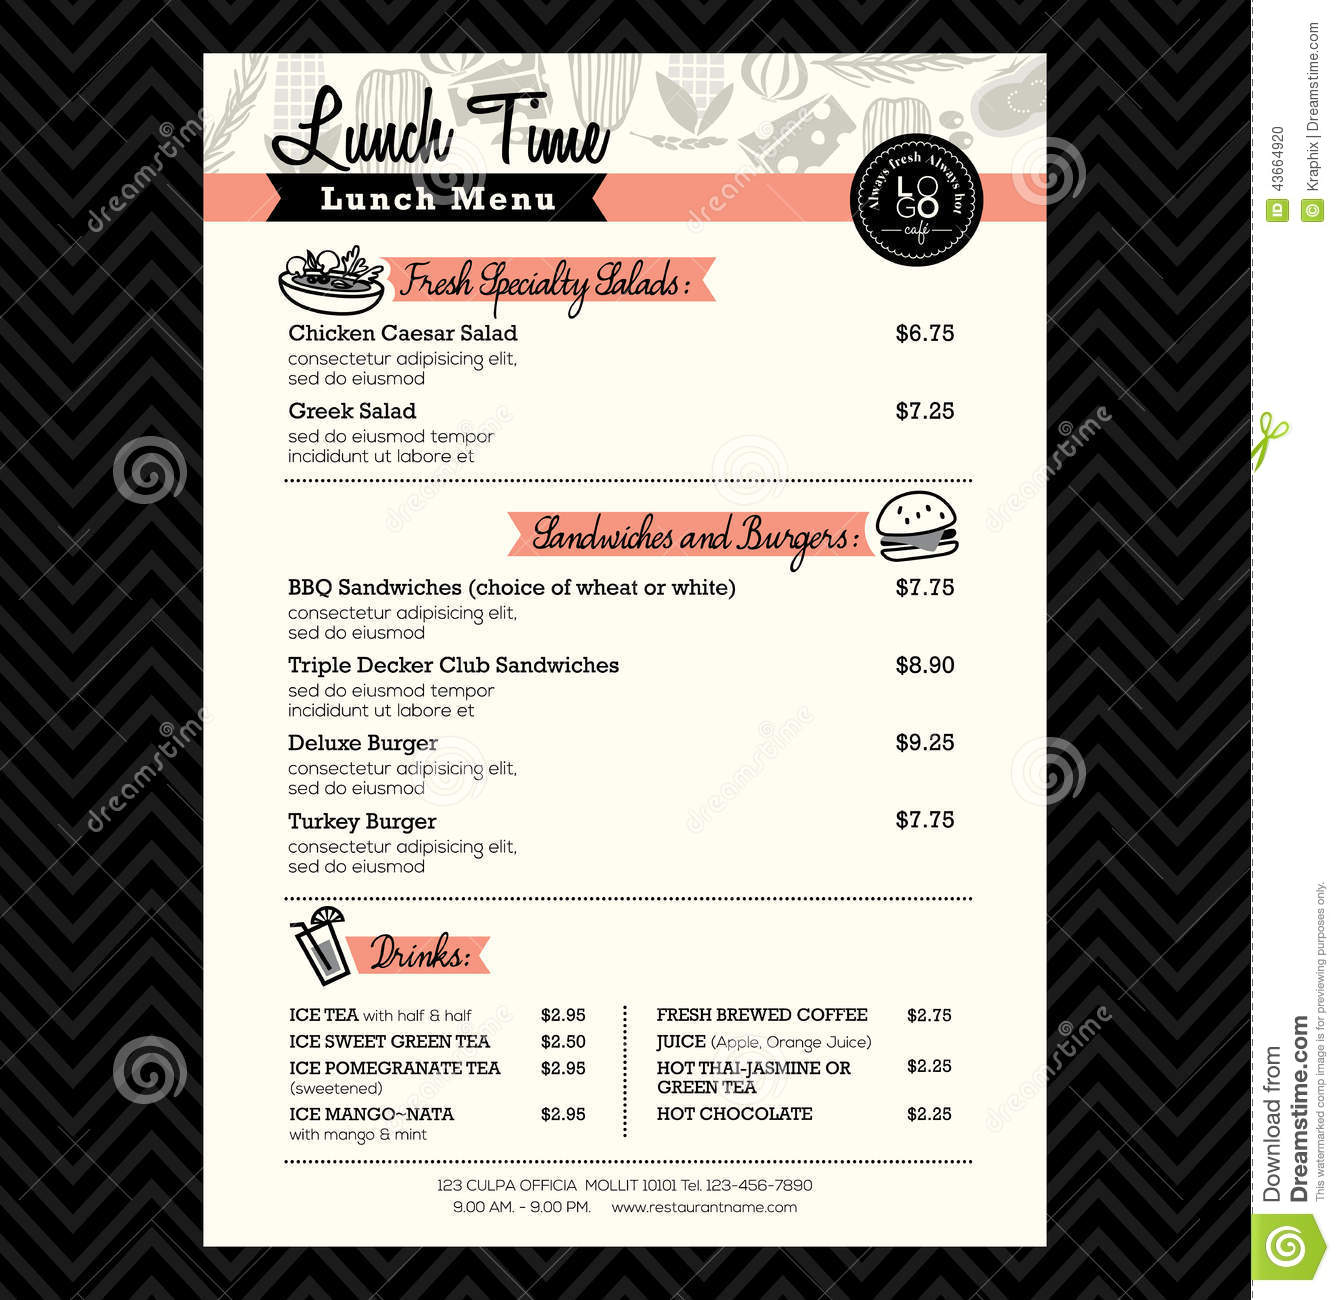 sandwich shop menu template - restaurant lunch menu design template layout stock vector